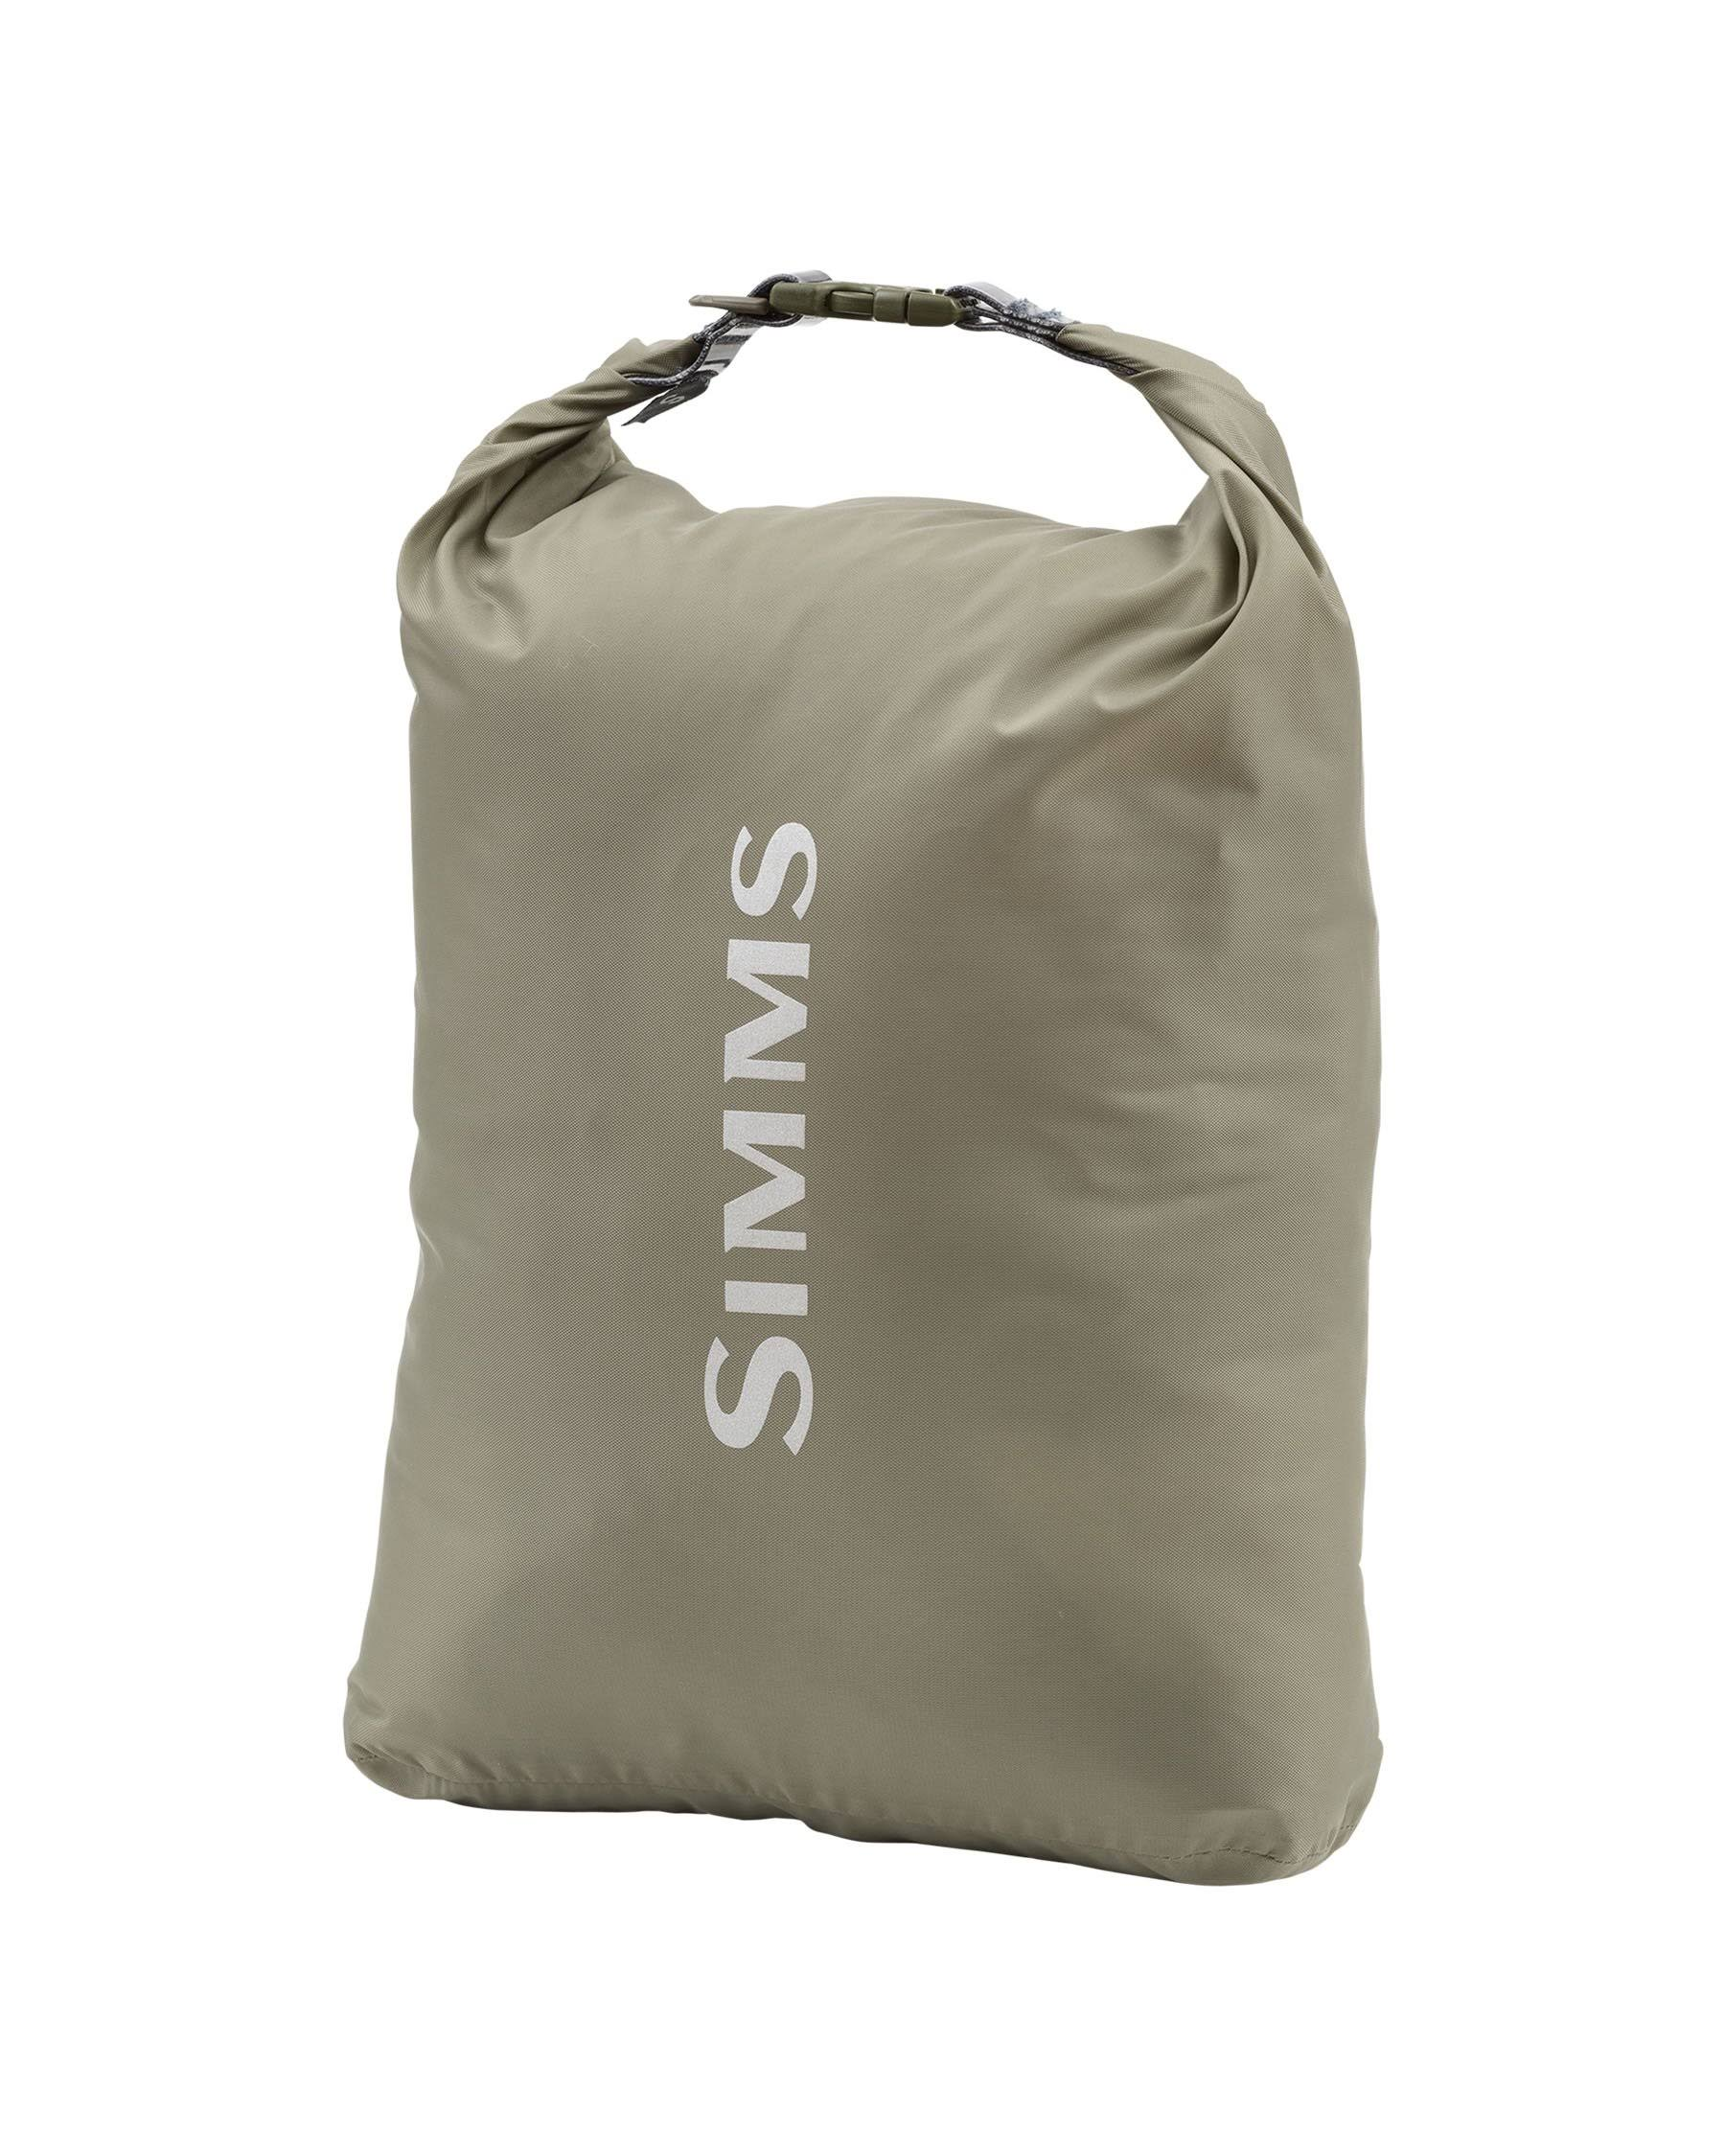 Simms Dry Creek Dry Bag - Small, Tan